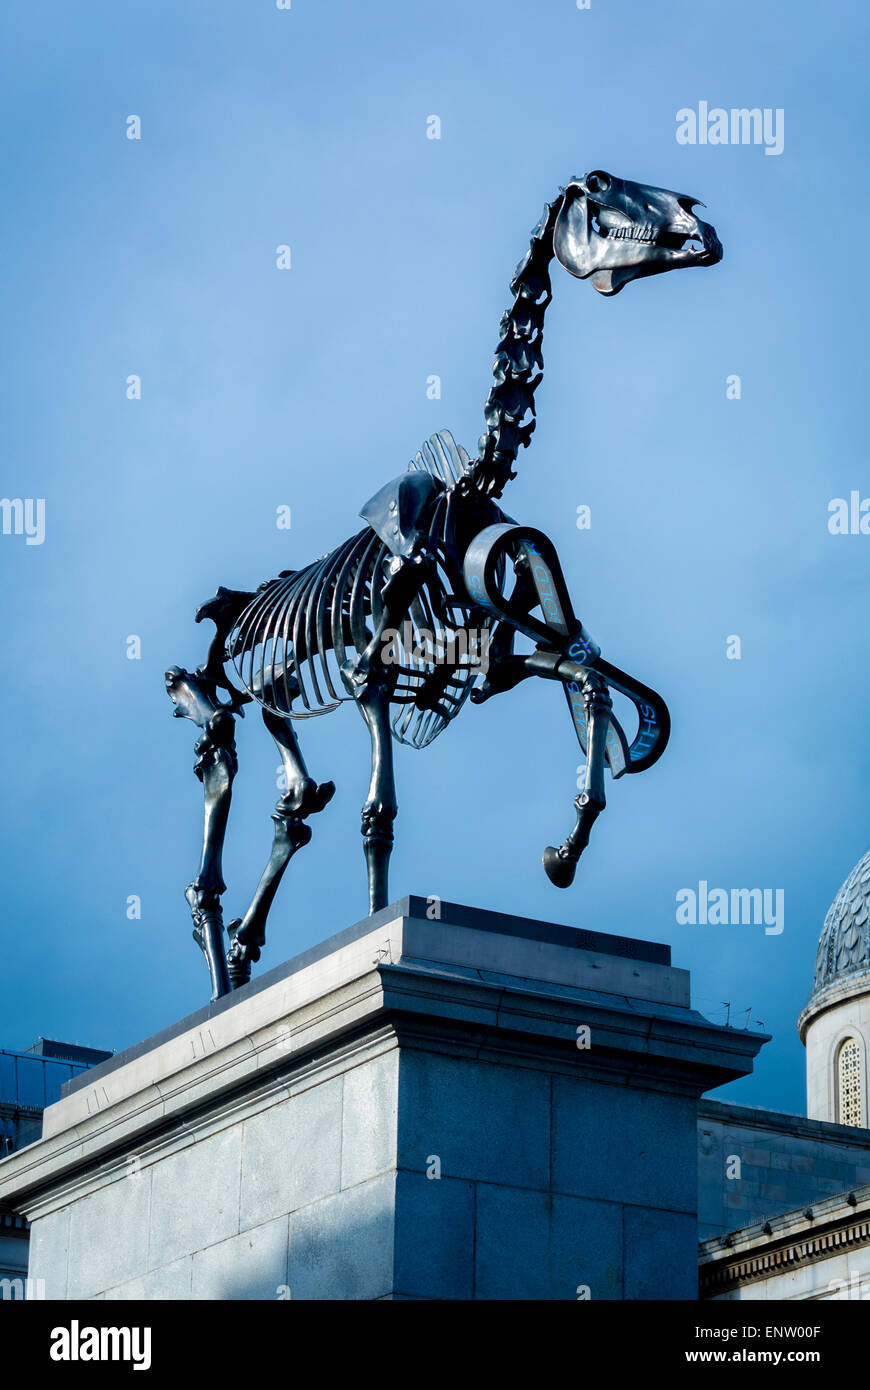 Gift Horse by artist Hans Haacke on the Fourth Plinth, Trafalgar Square, London, UK. - Stock Image